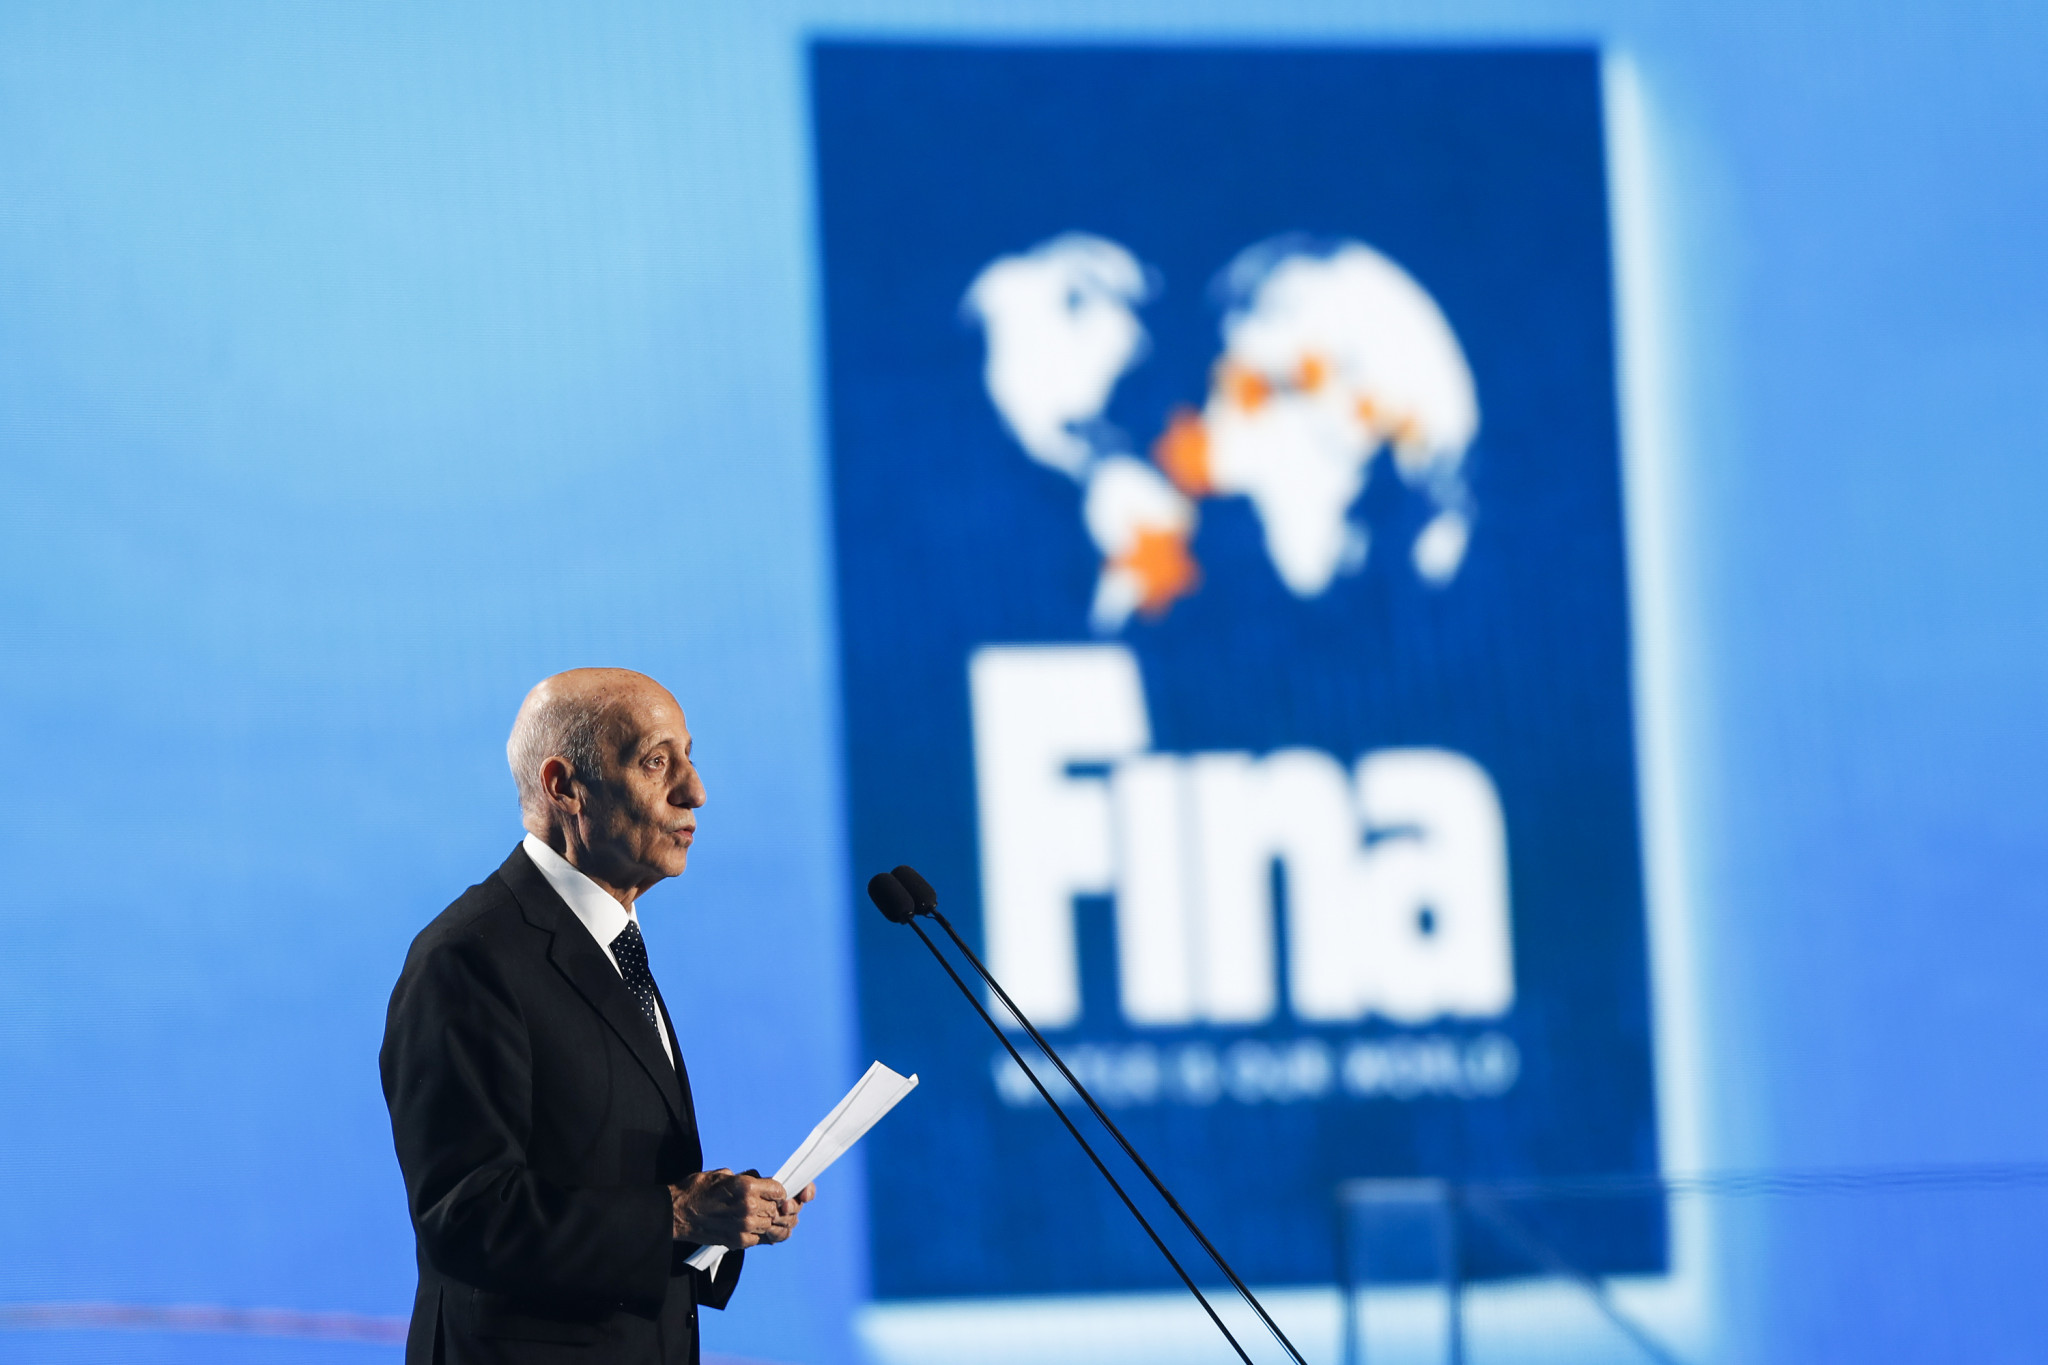 Husain Al-Musallam is expected to succeed  Julio Maglione as FINA President ©Getty Images